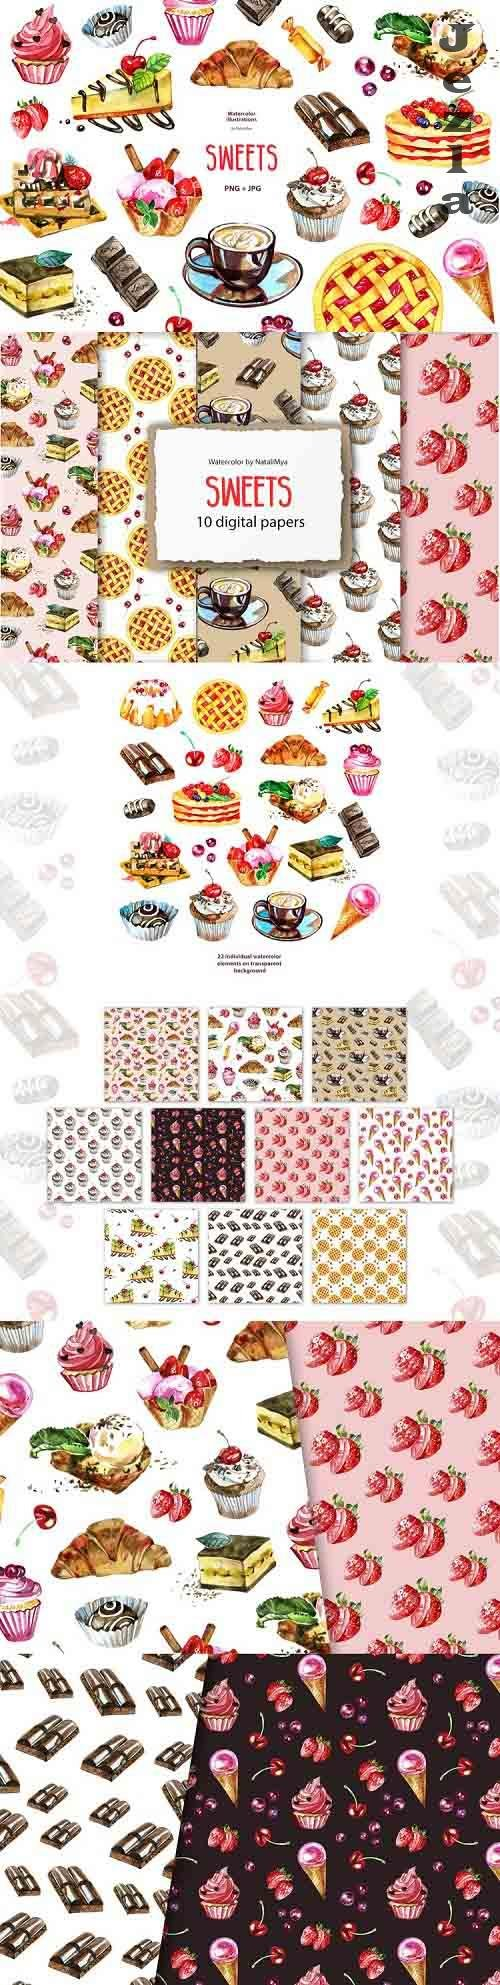 Watercolor sweets clipart and digital paper pack - 1239210 - 1240714